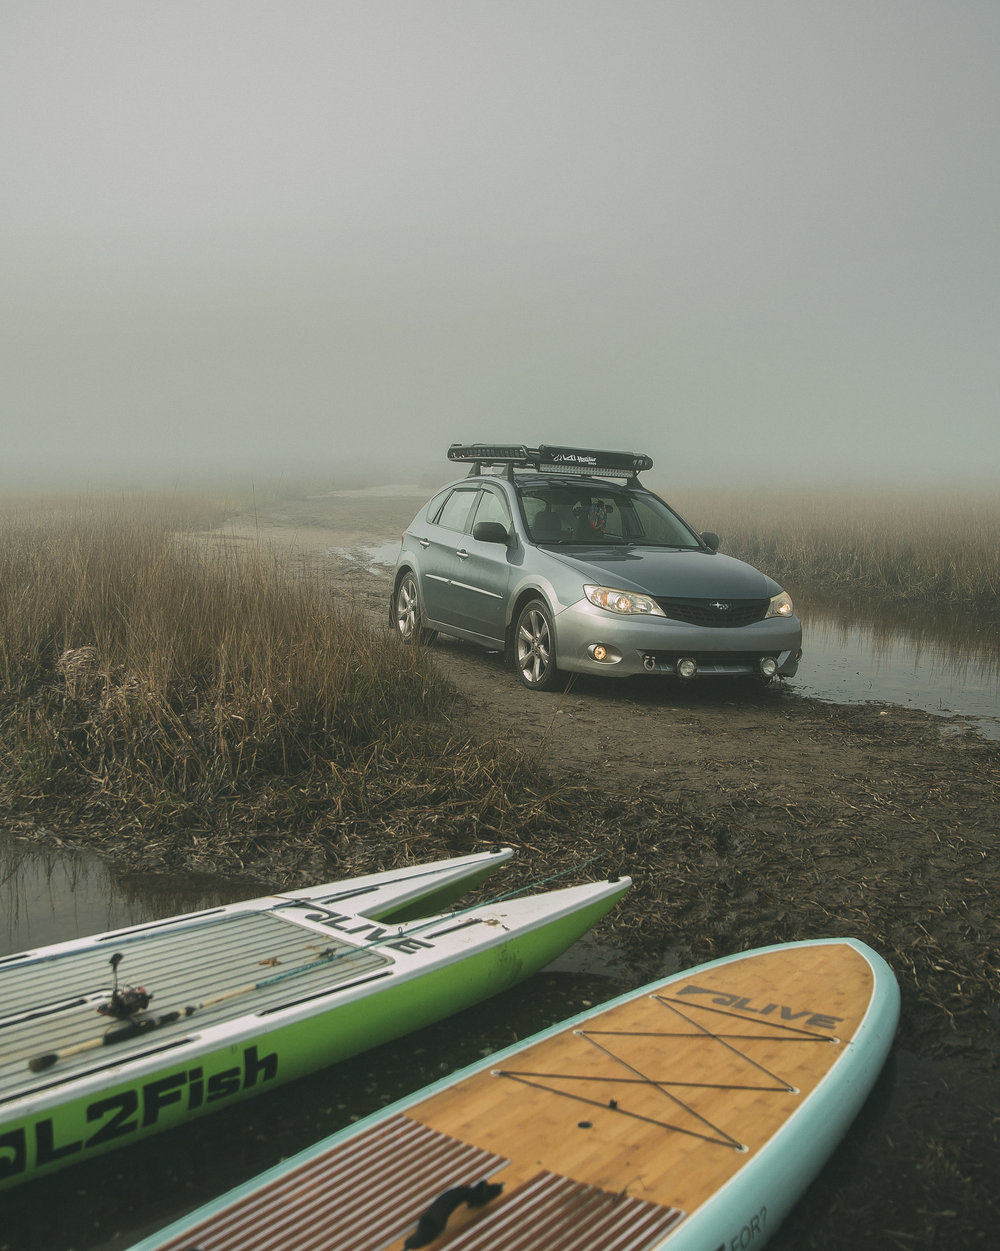 Setting up our paddle boards in the fog.